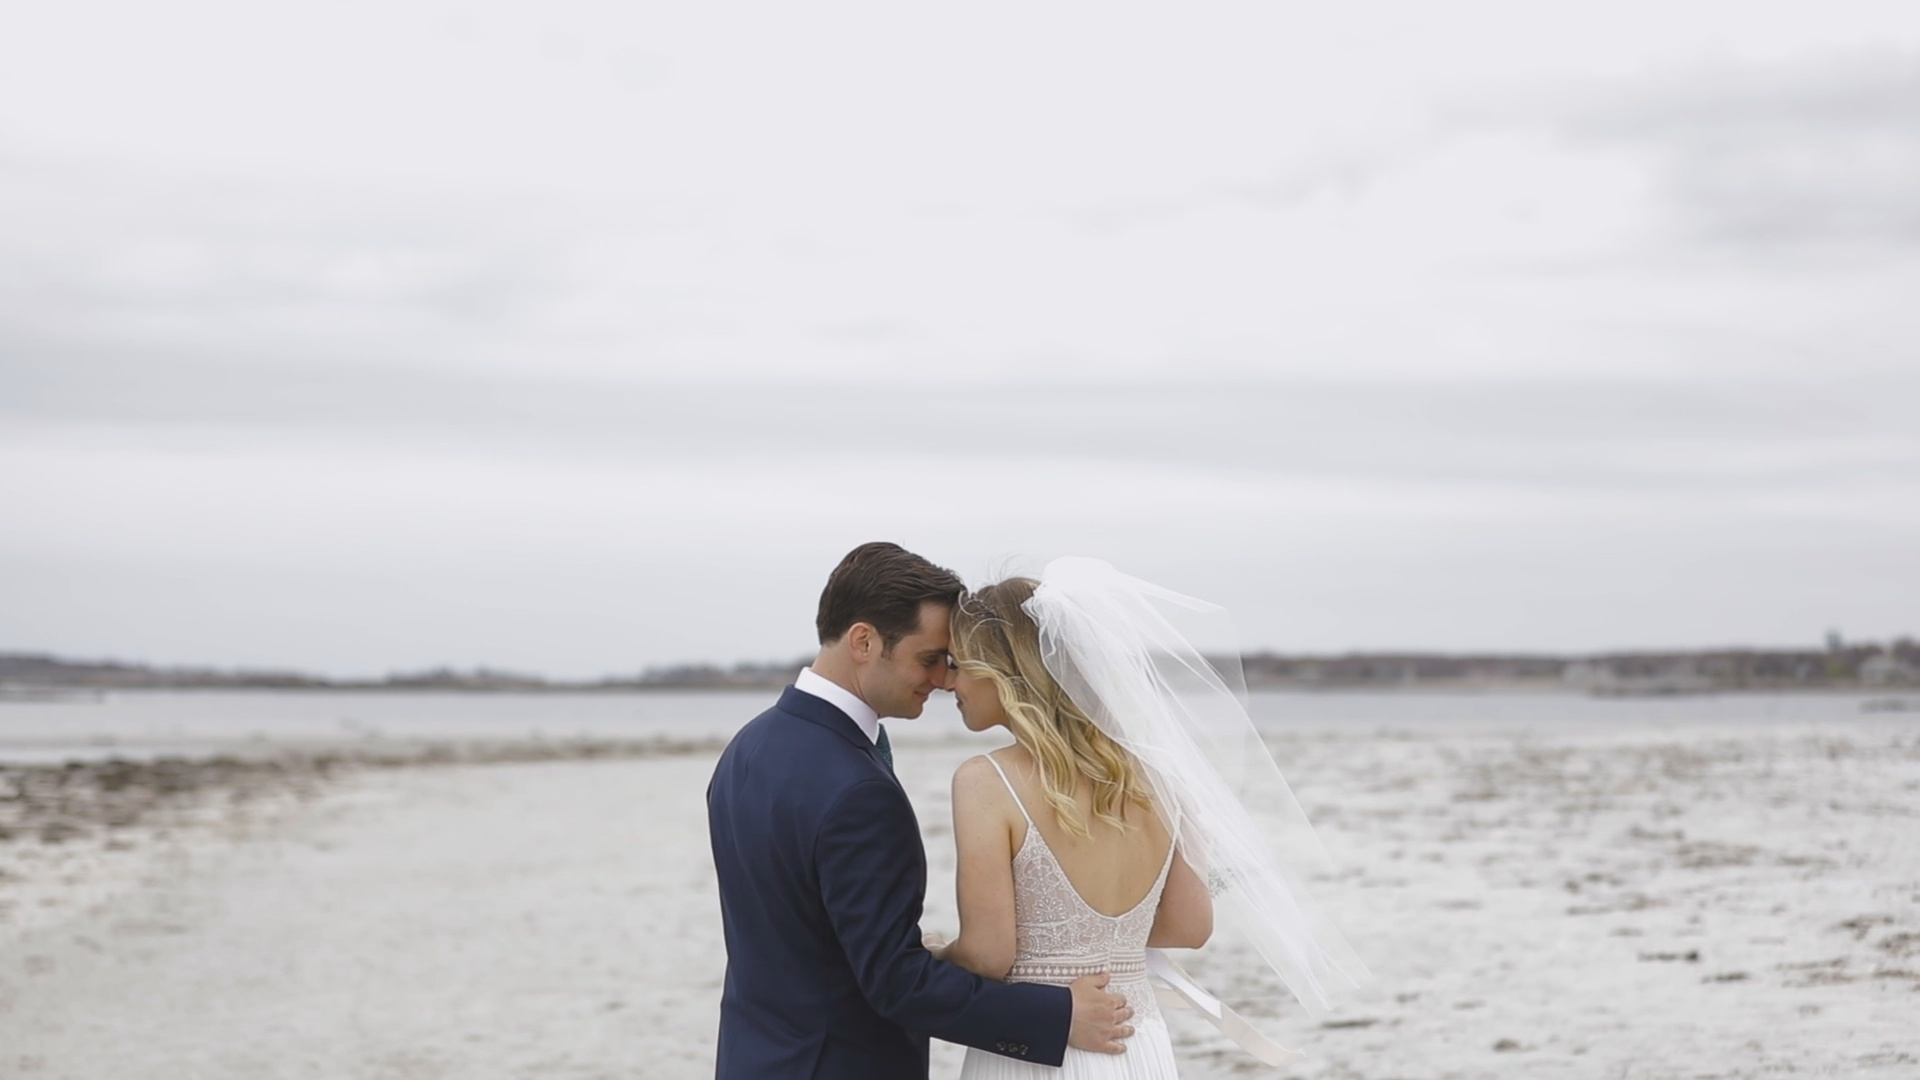 Lauren + Leo | Kennebunkport, Maine | Earth at Hidden Pond, Kennebunkport